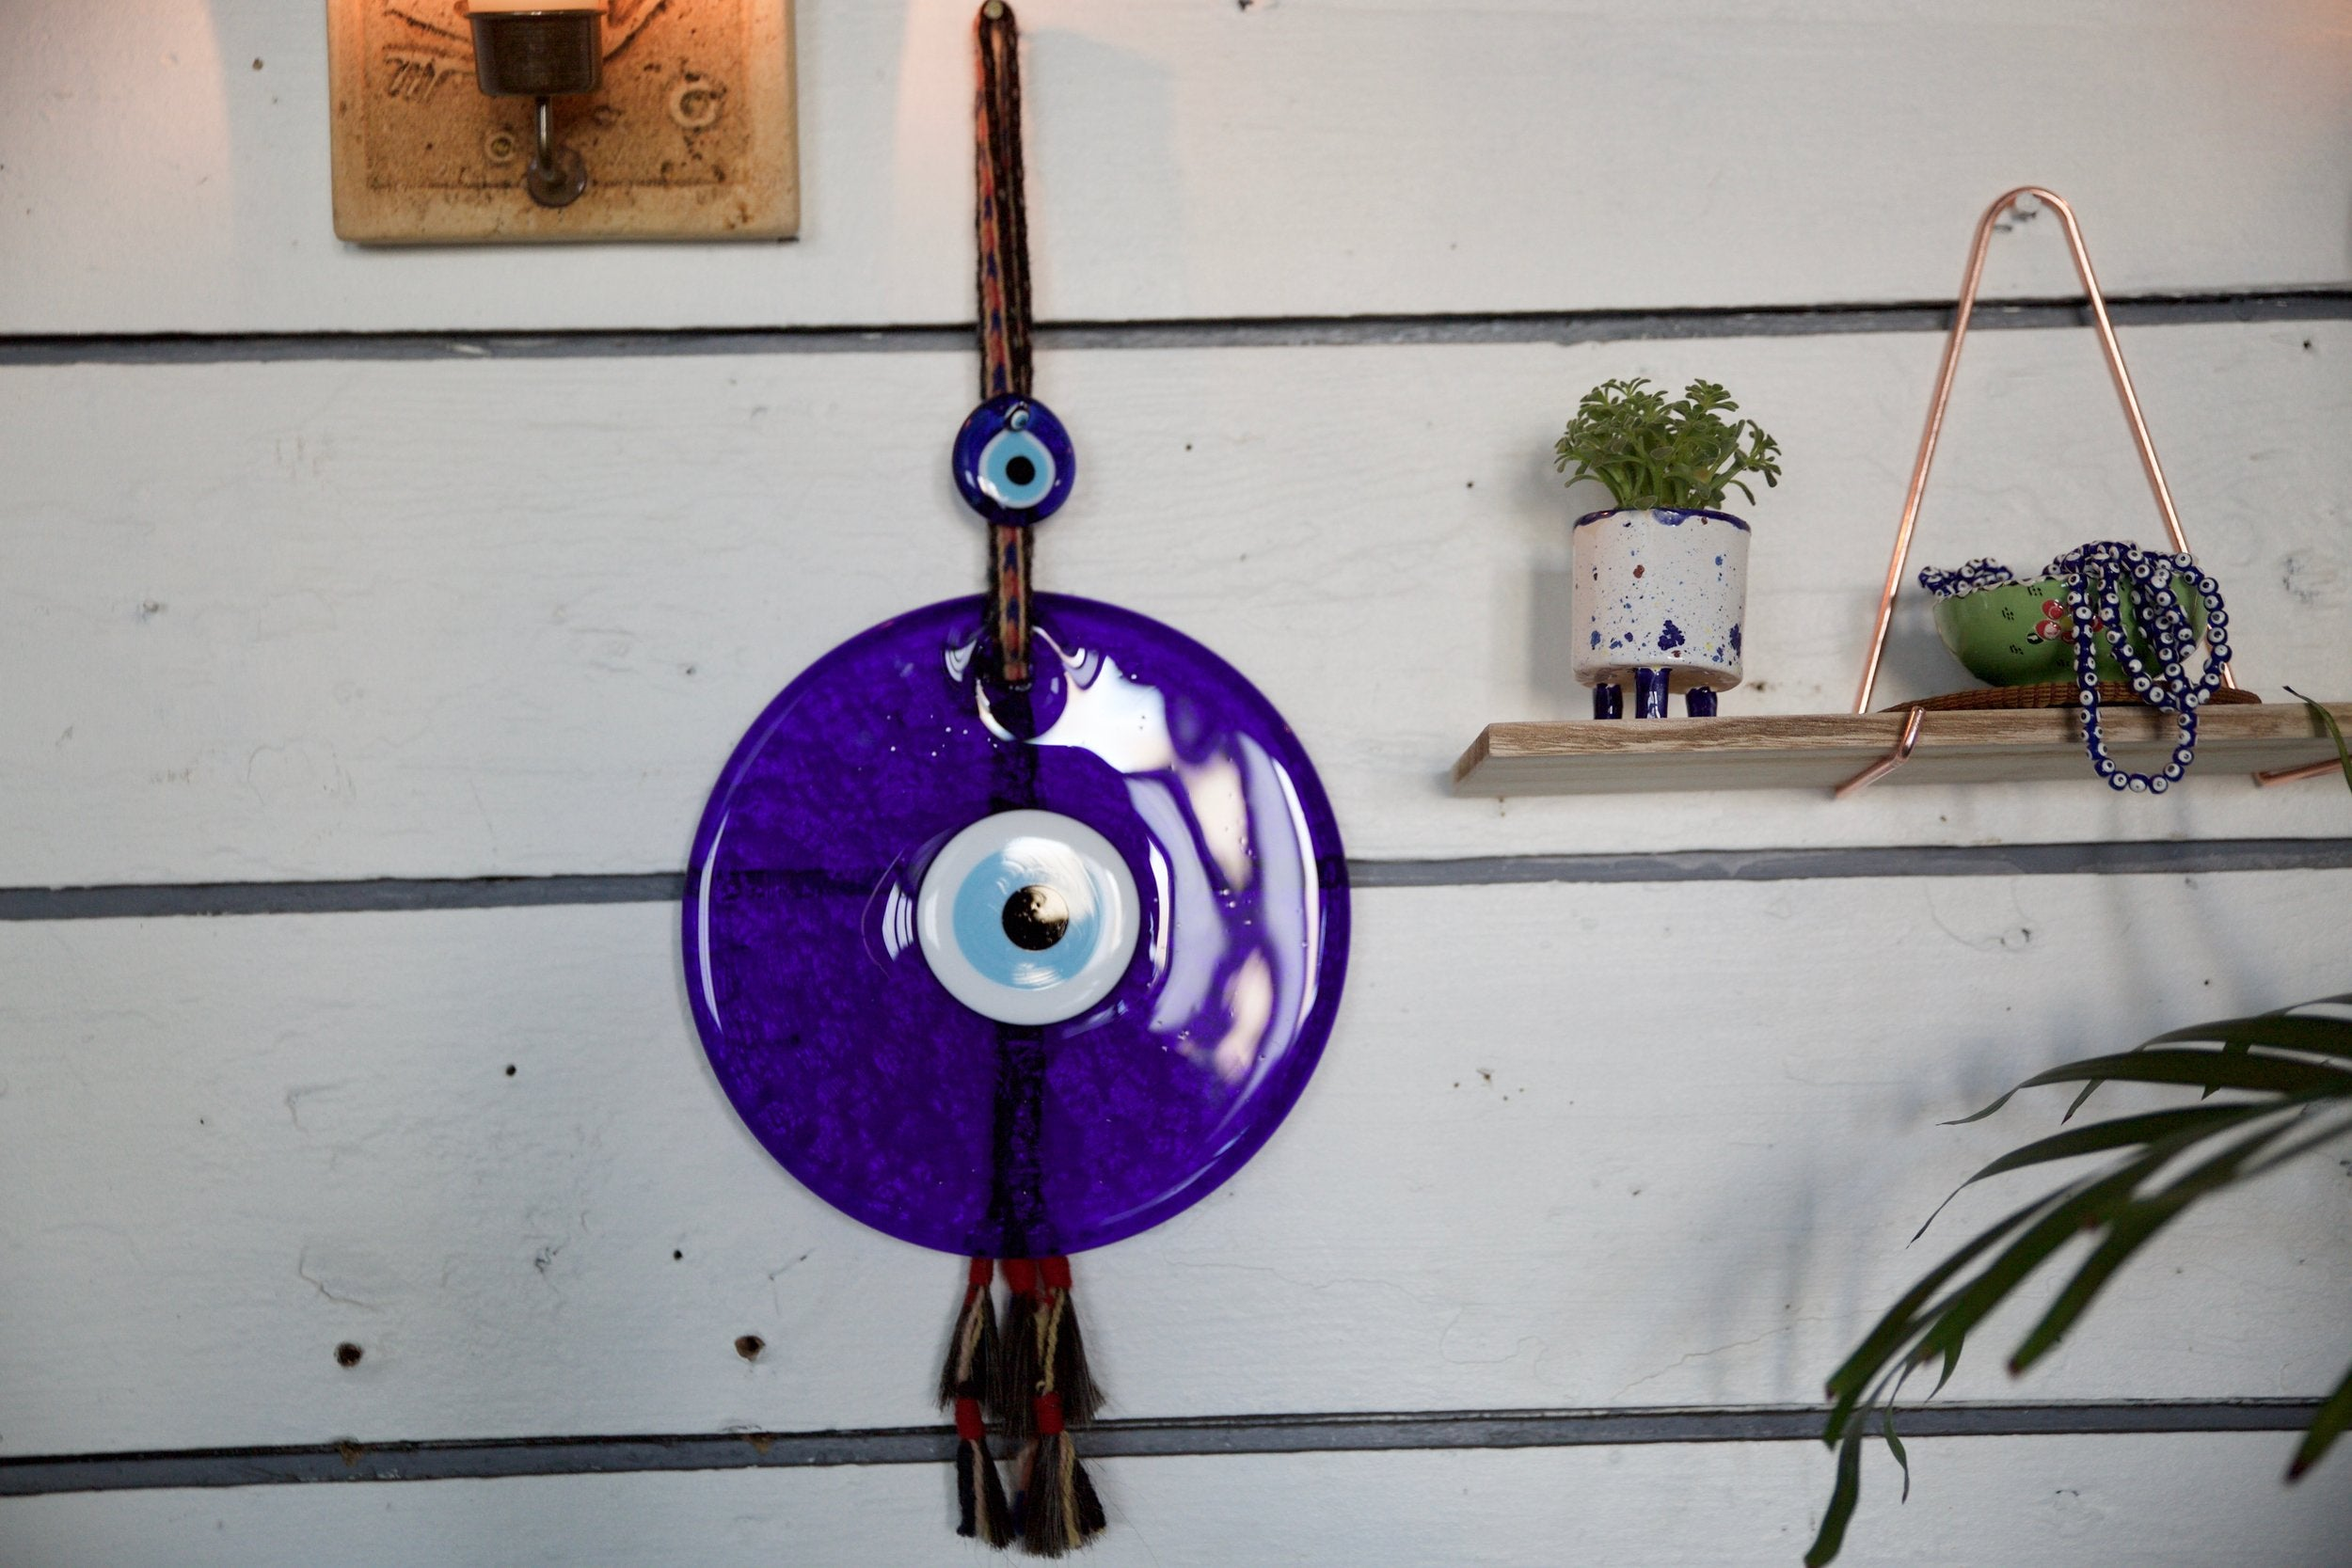 glass-evil-eye-protection-wall-hanging-decoration-5